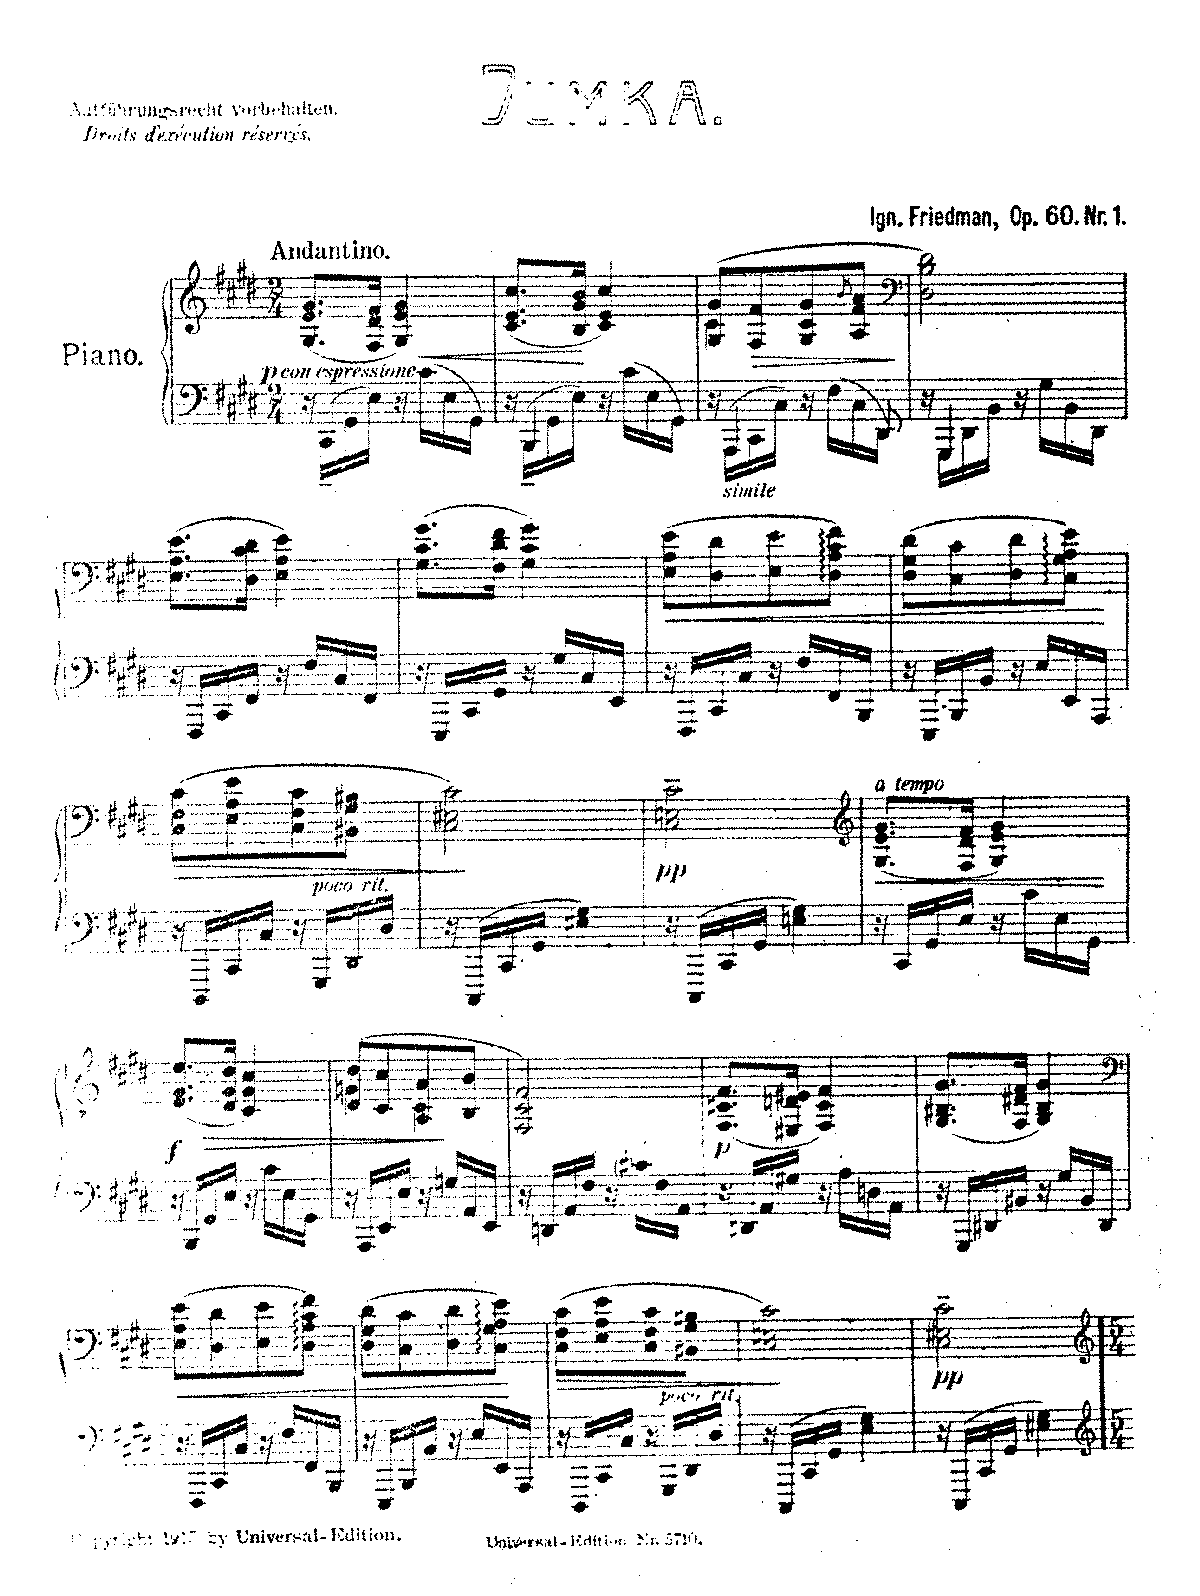 Friedman - Op.60 - Polish Lyrics.pdf